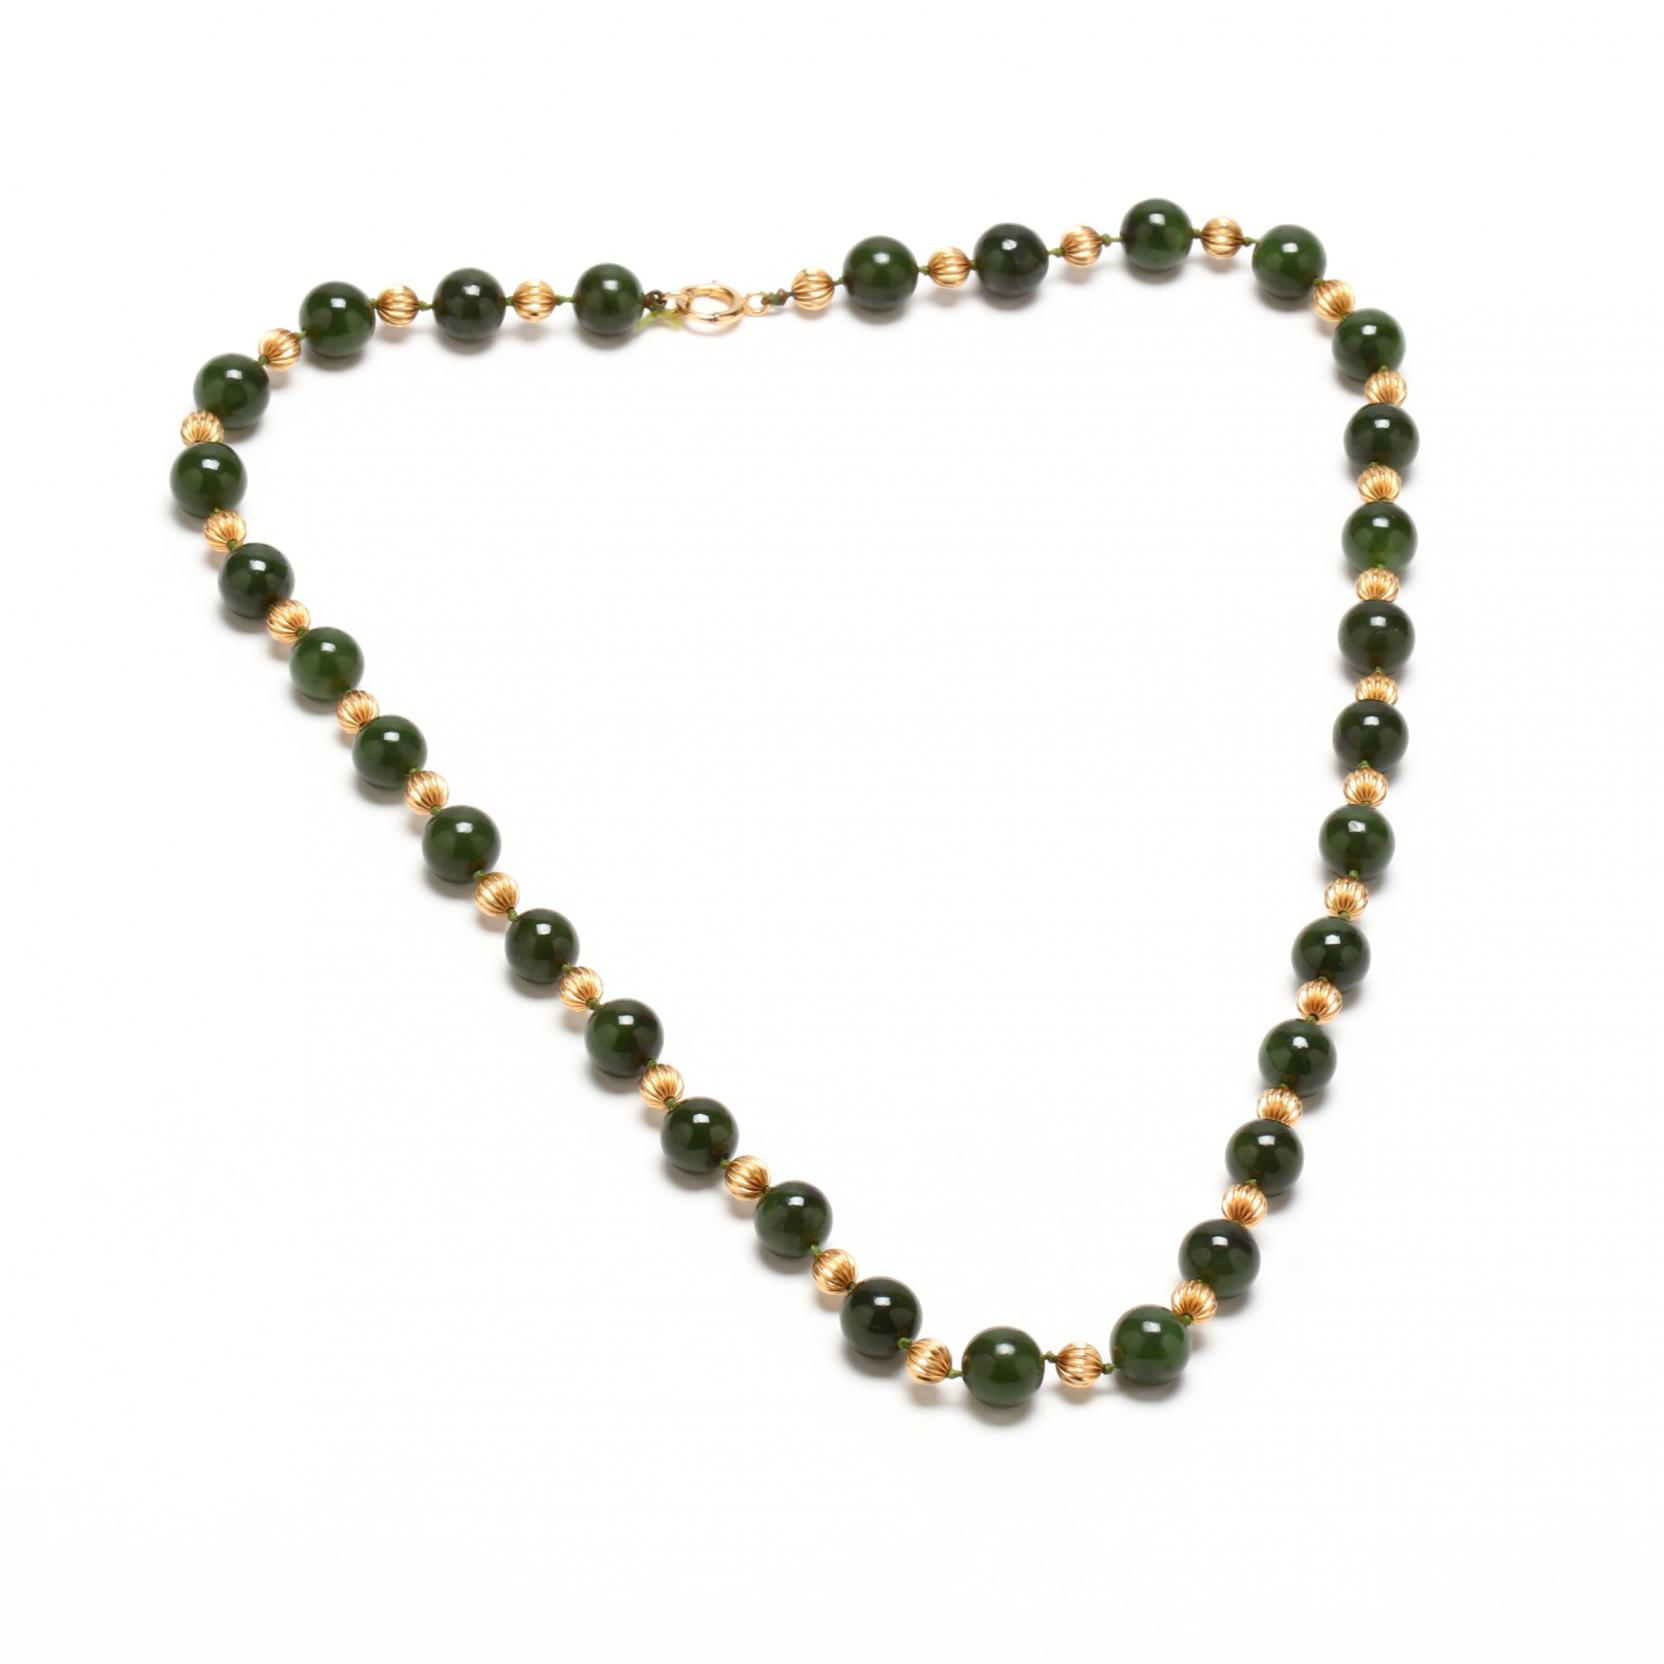 14kt-gold-and-jade-bead-necklace